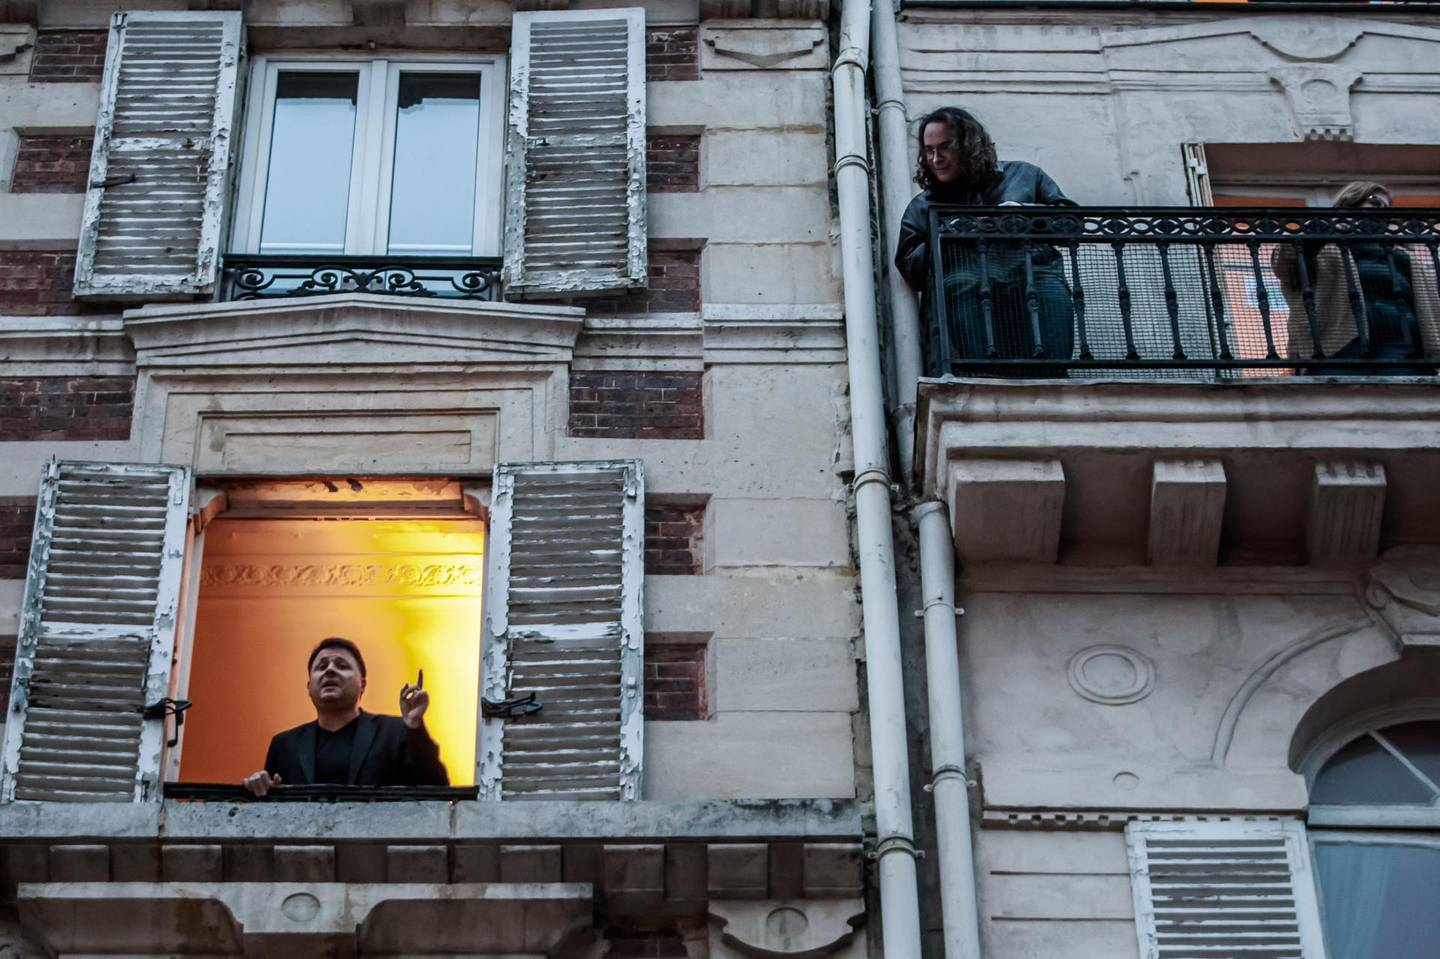 epa08312429 French tenor singer Stephane Senechal (L) sings at his window for the inhabitants of his street in Paris, France, 21 March 2020.  Senechal signs every evening since the beginning of containment measures decided by the government to lockdown France in an attempt to stop the widespread of the SARS-CoV-2 coronavirus causing the Covid-19 disease.  EPA/CHRISTOPHE PETIT TESSON